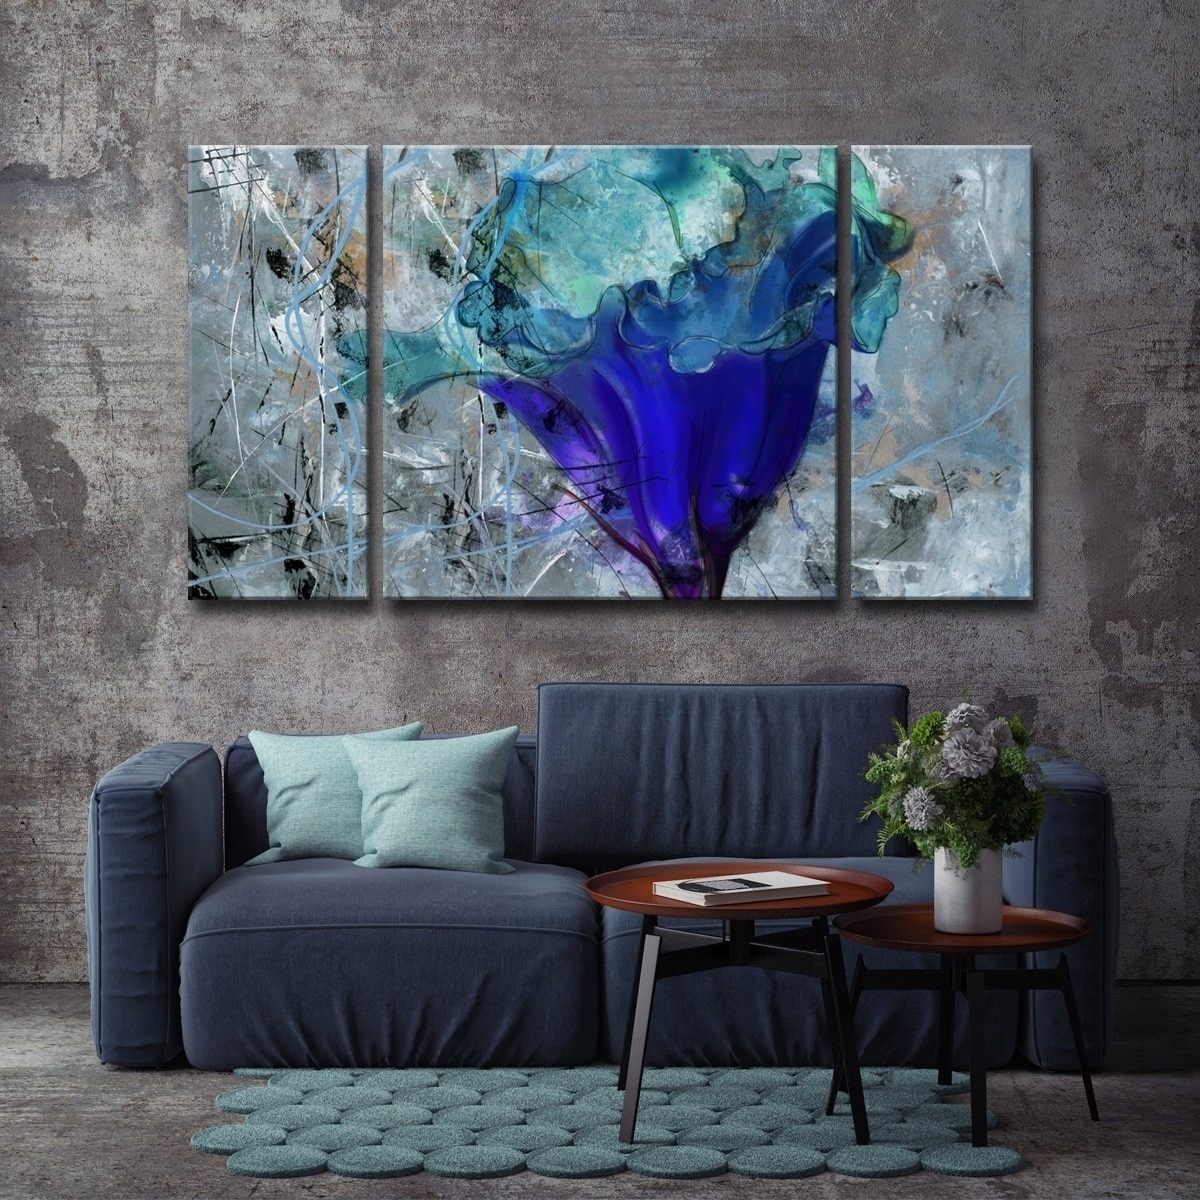 Shop Oliver & James Blue Flower Canvas Wall Art - Free Shipping On with regard to Overstock Wall Art (Image 12 of 20)